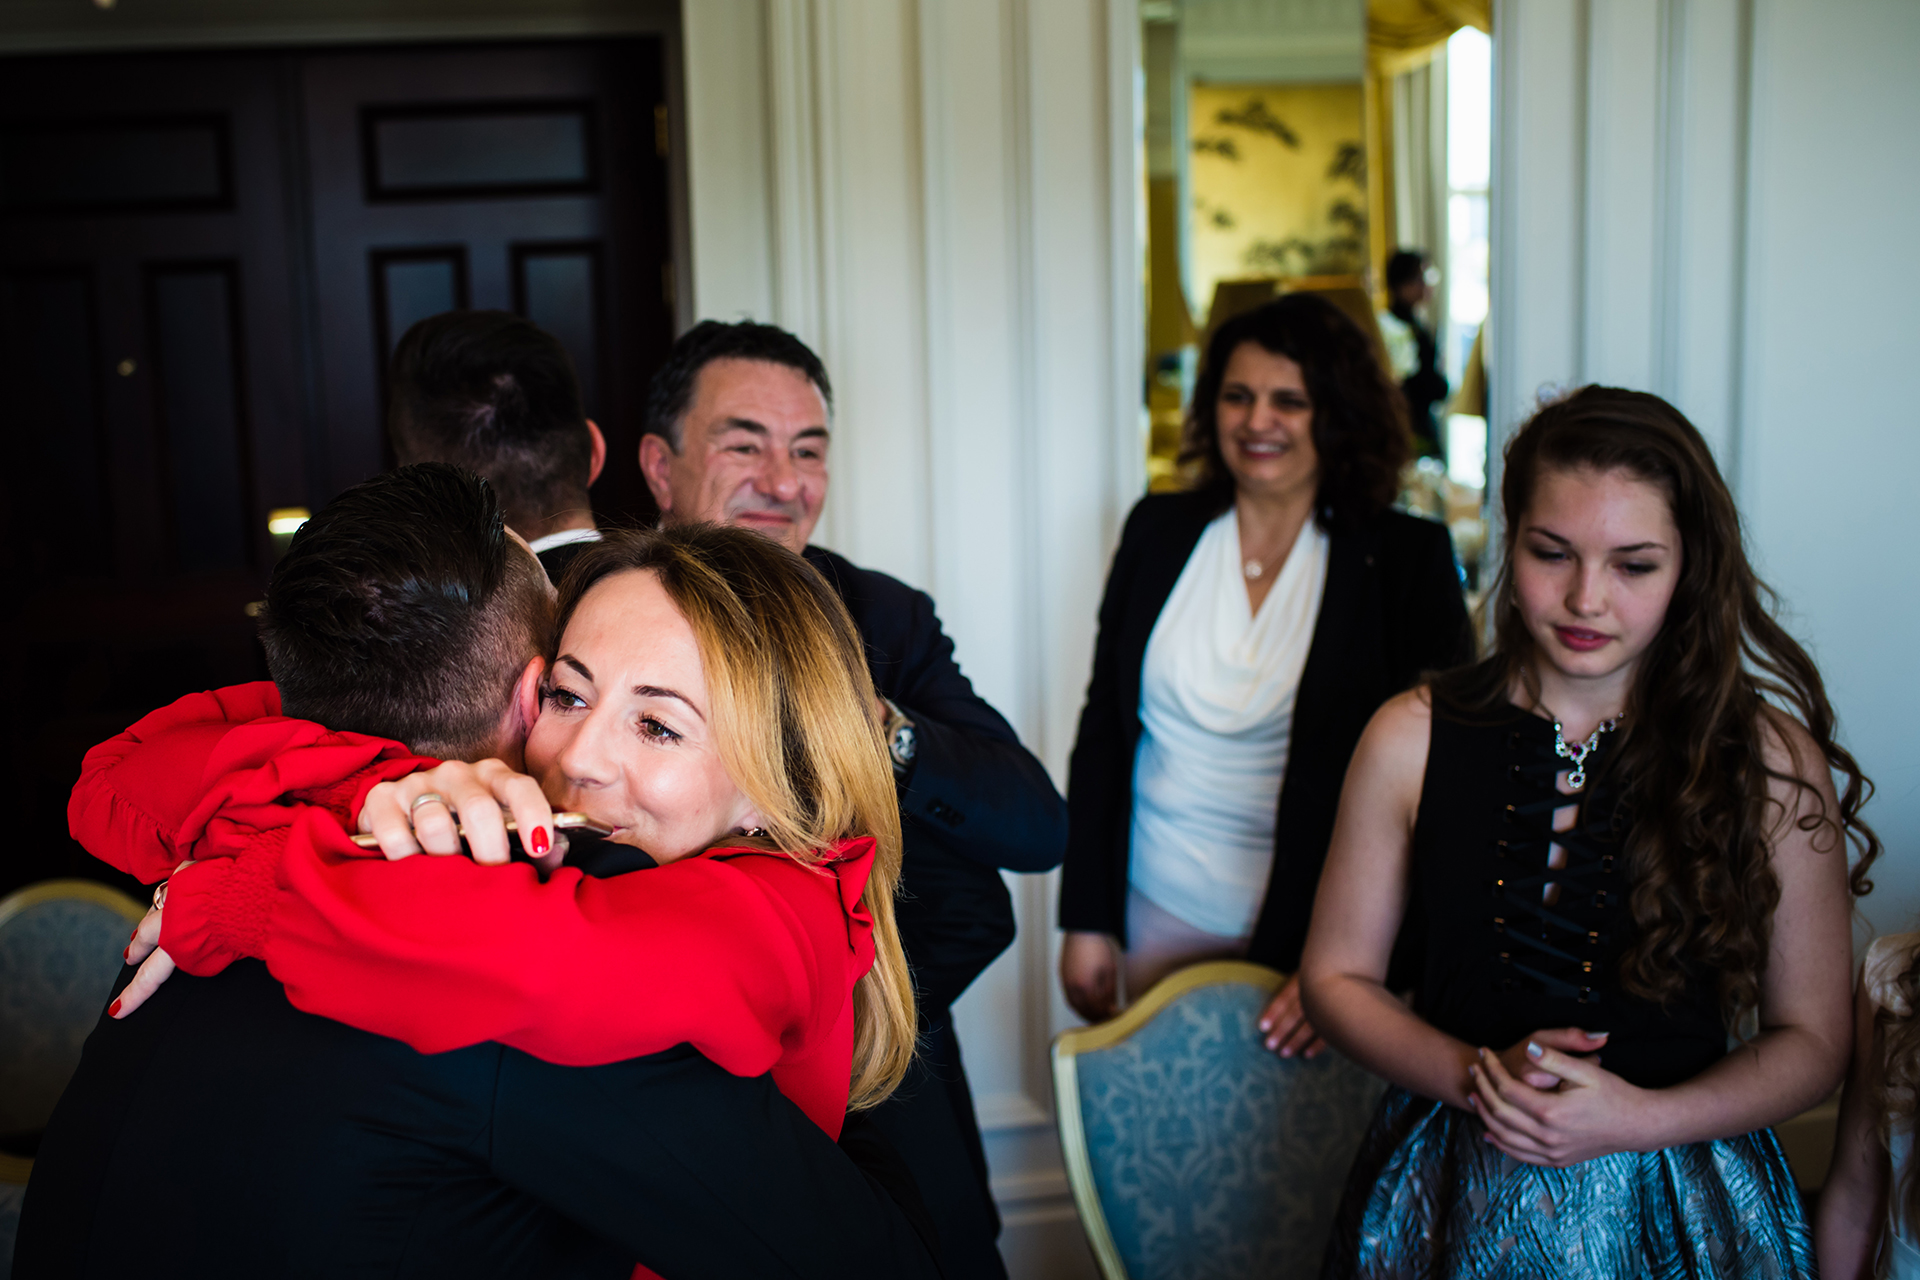 The Savoy Hotel Elopement Photography | A hug of congratulations is given after the marriage ceremony